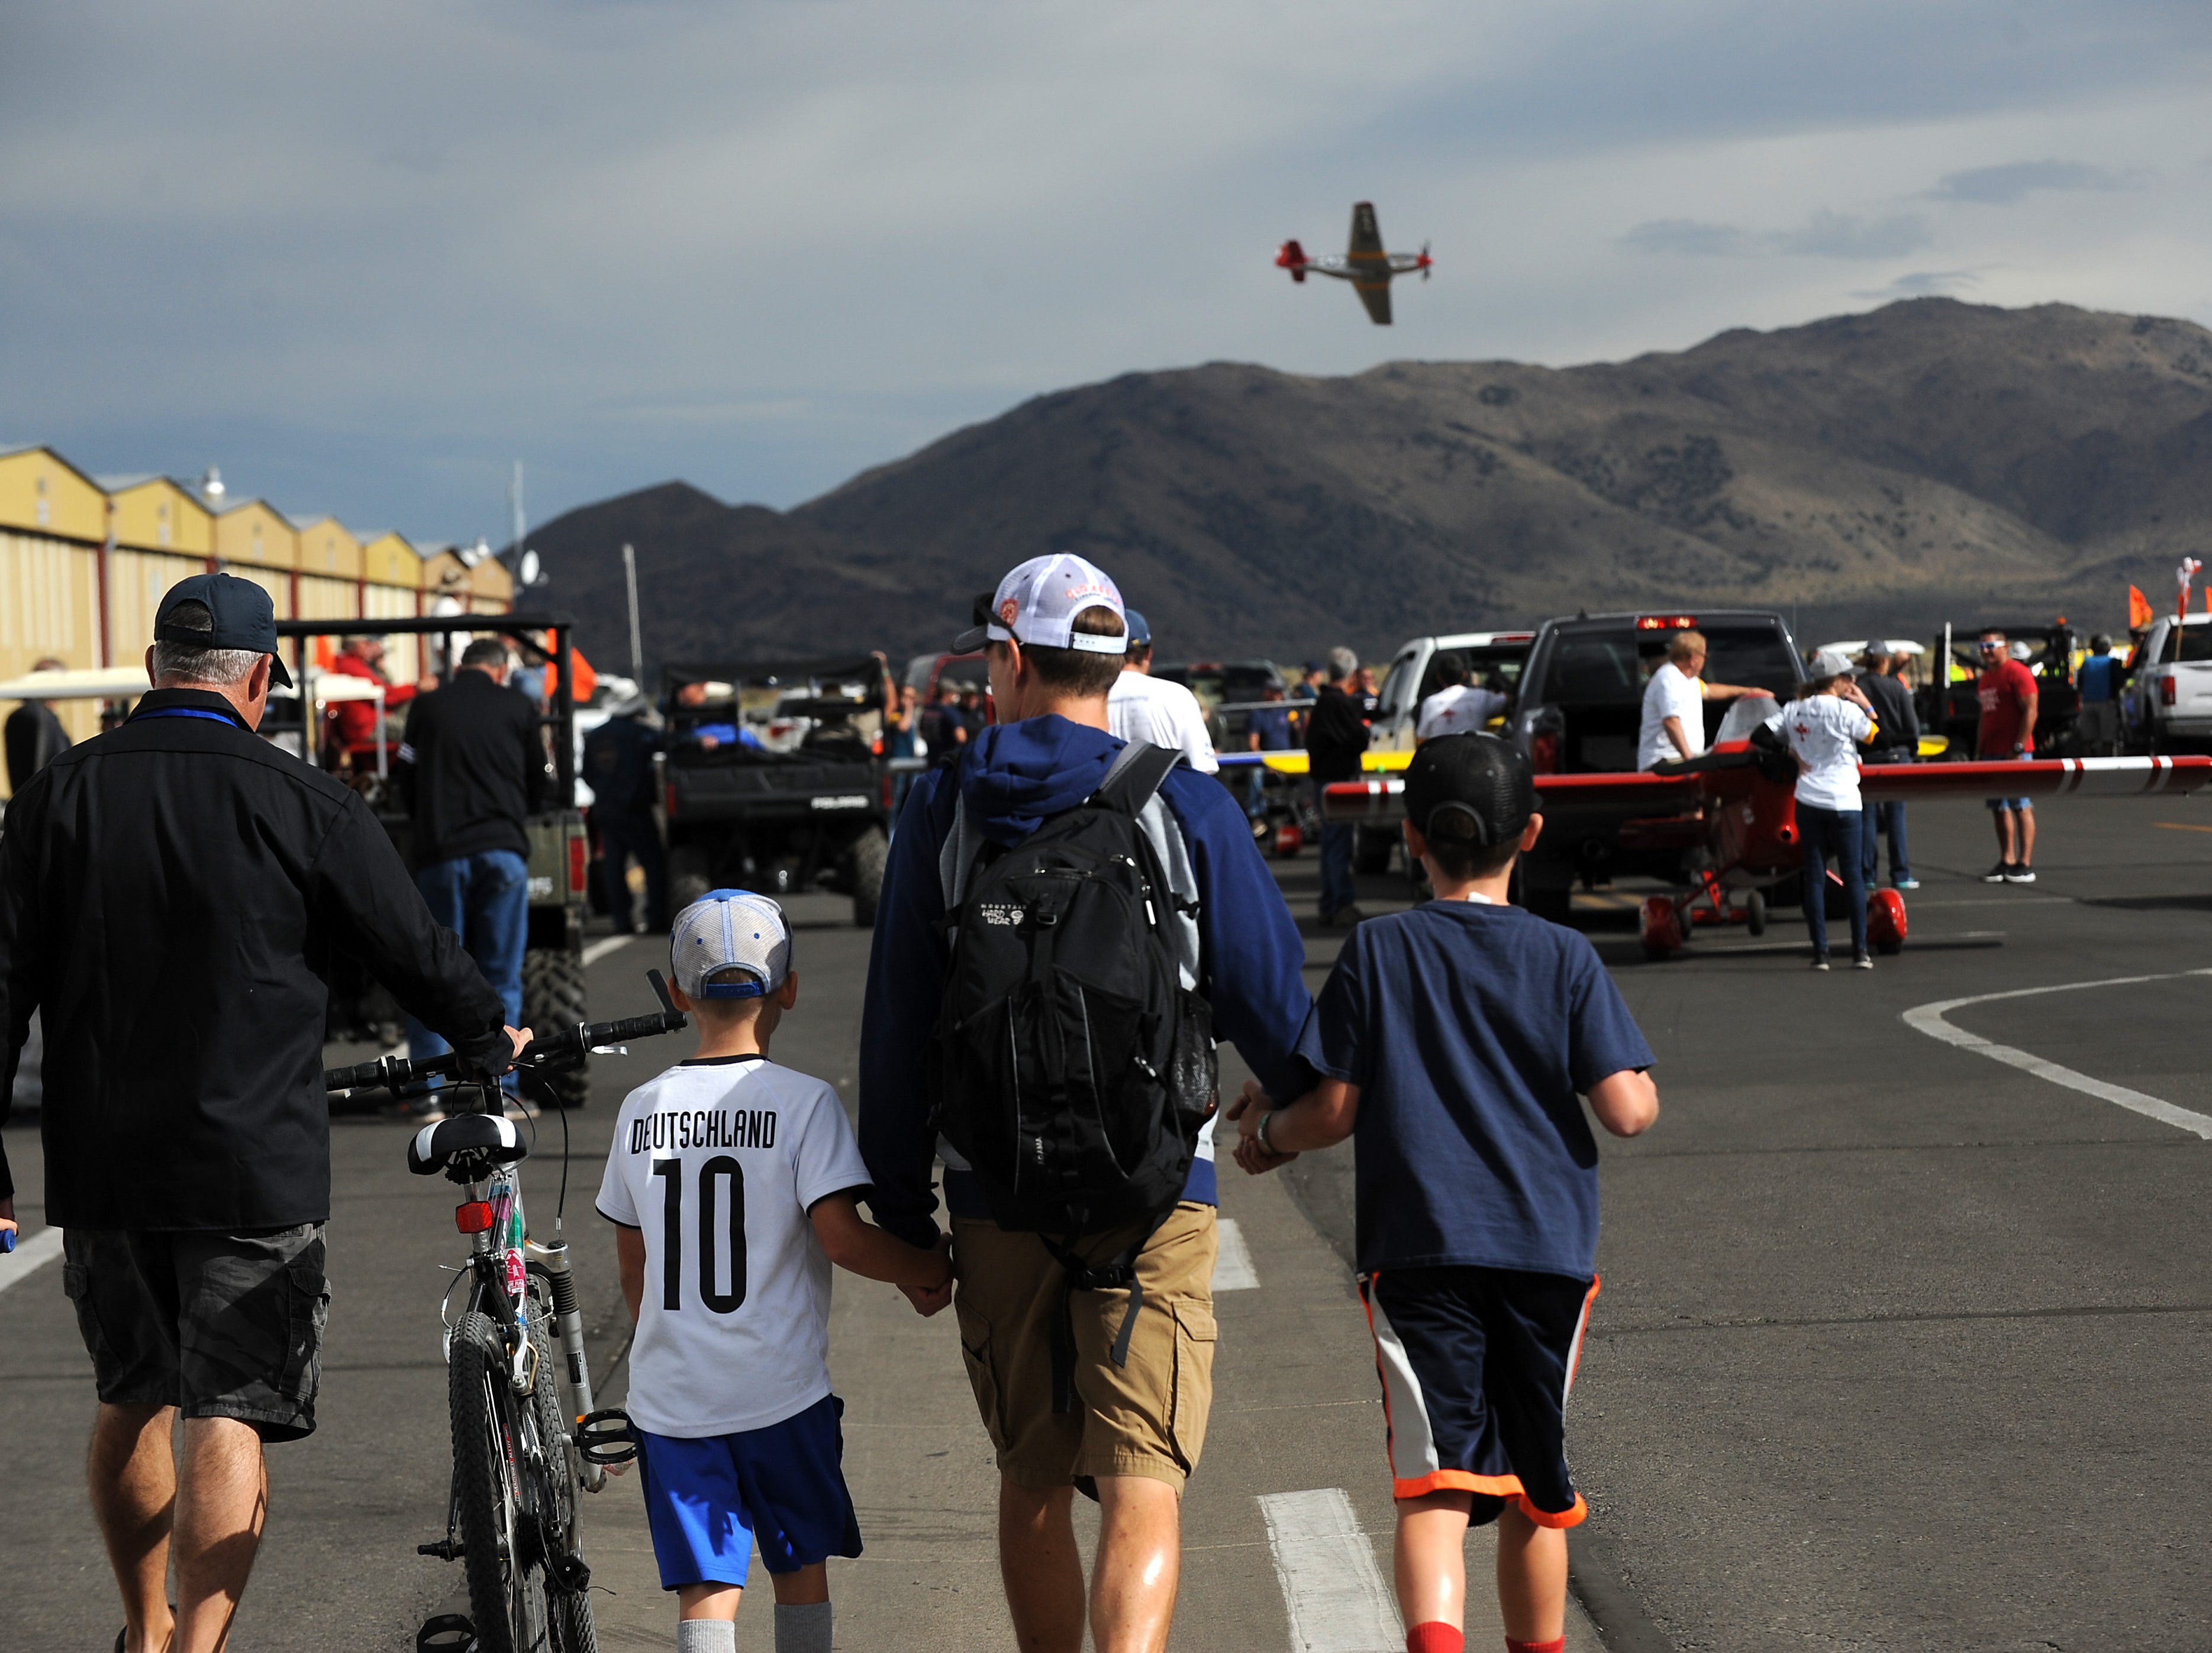 Fans attend the STIHL National Championship Air Races at Stead Airport north of Reno on Sept. 15, 2018.